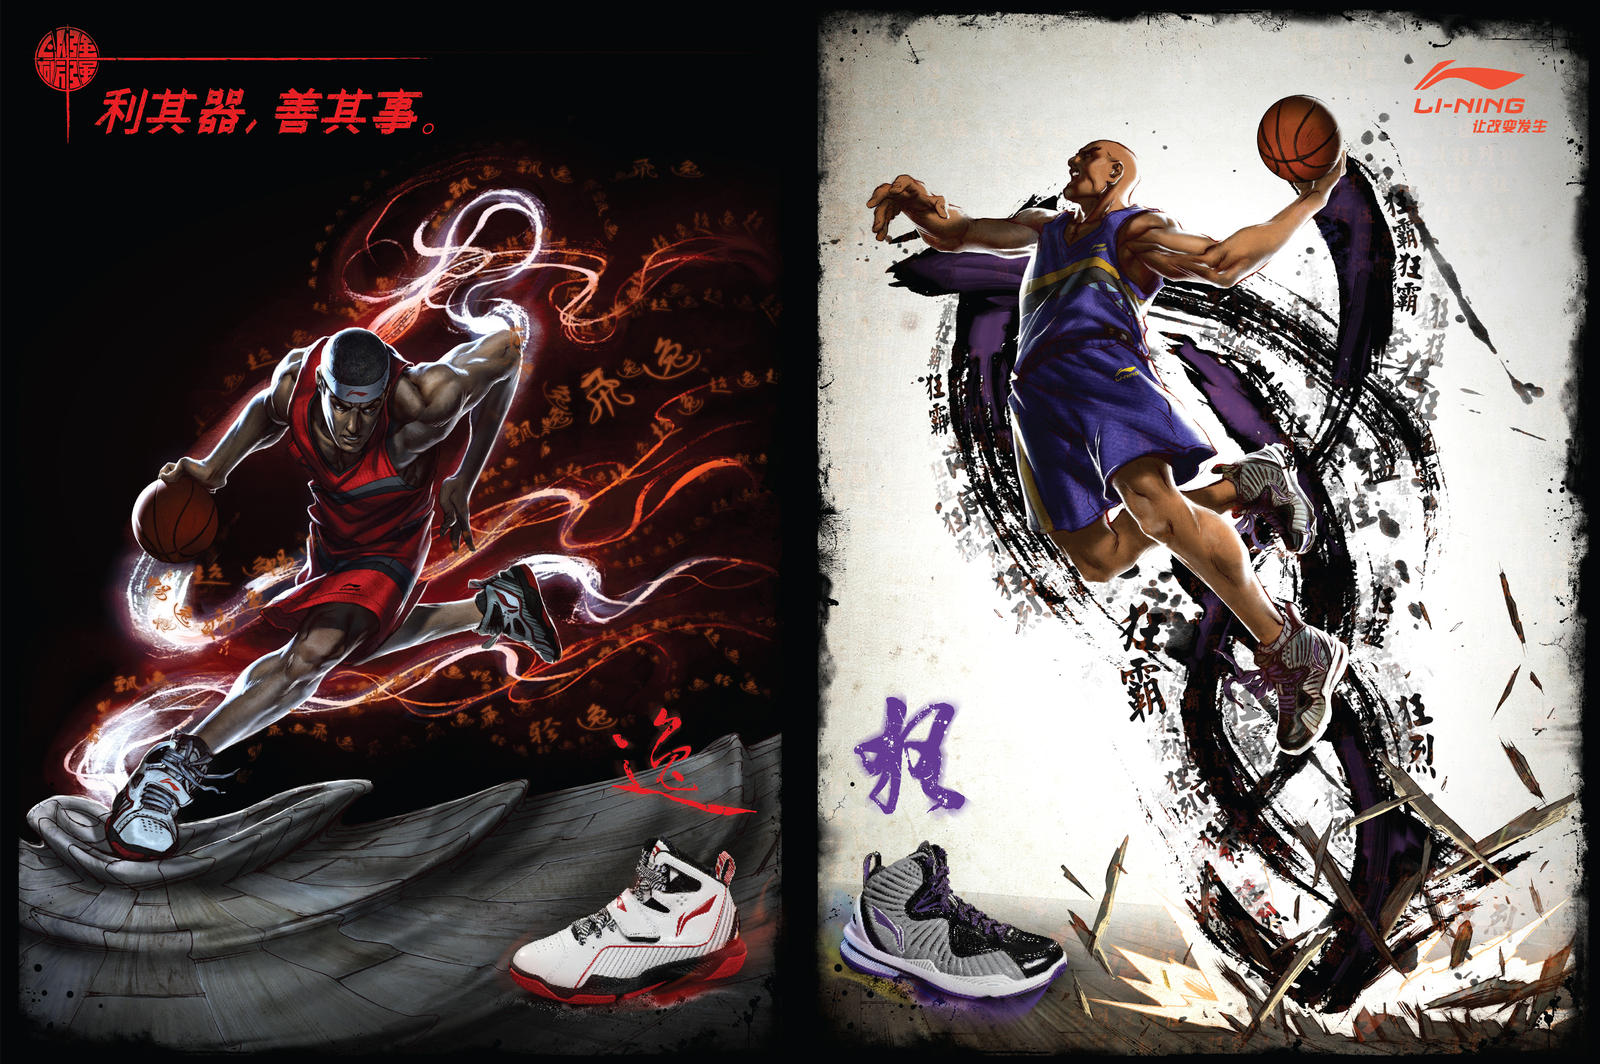 BASKETBALL - LI-NING ADVERT by alvinlee